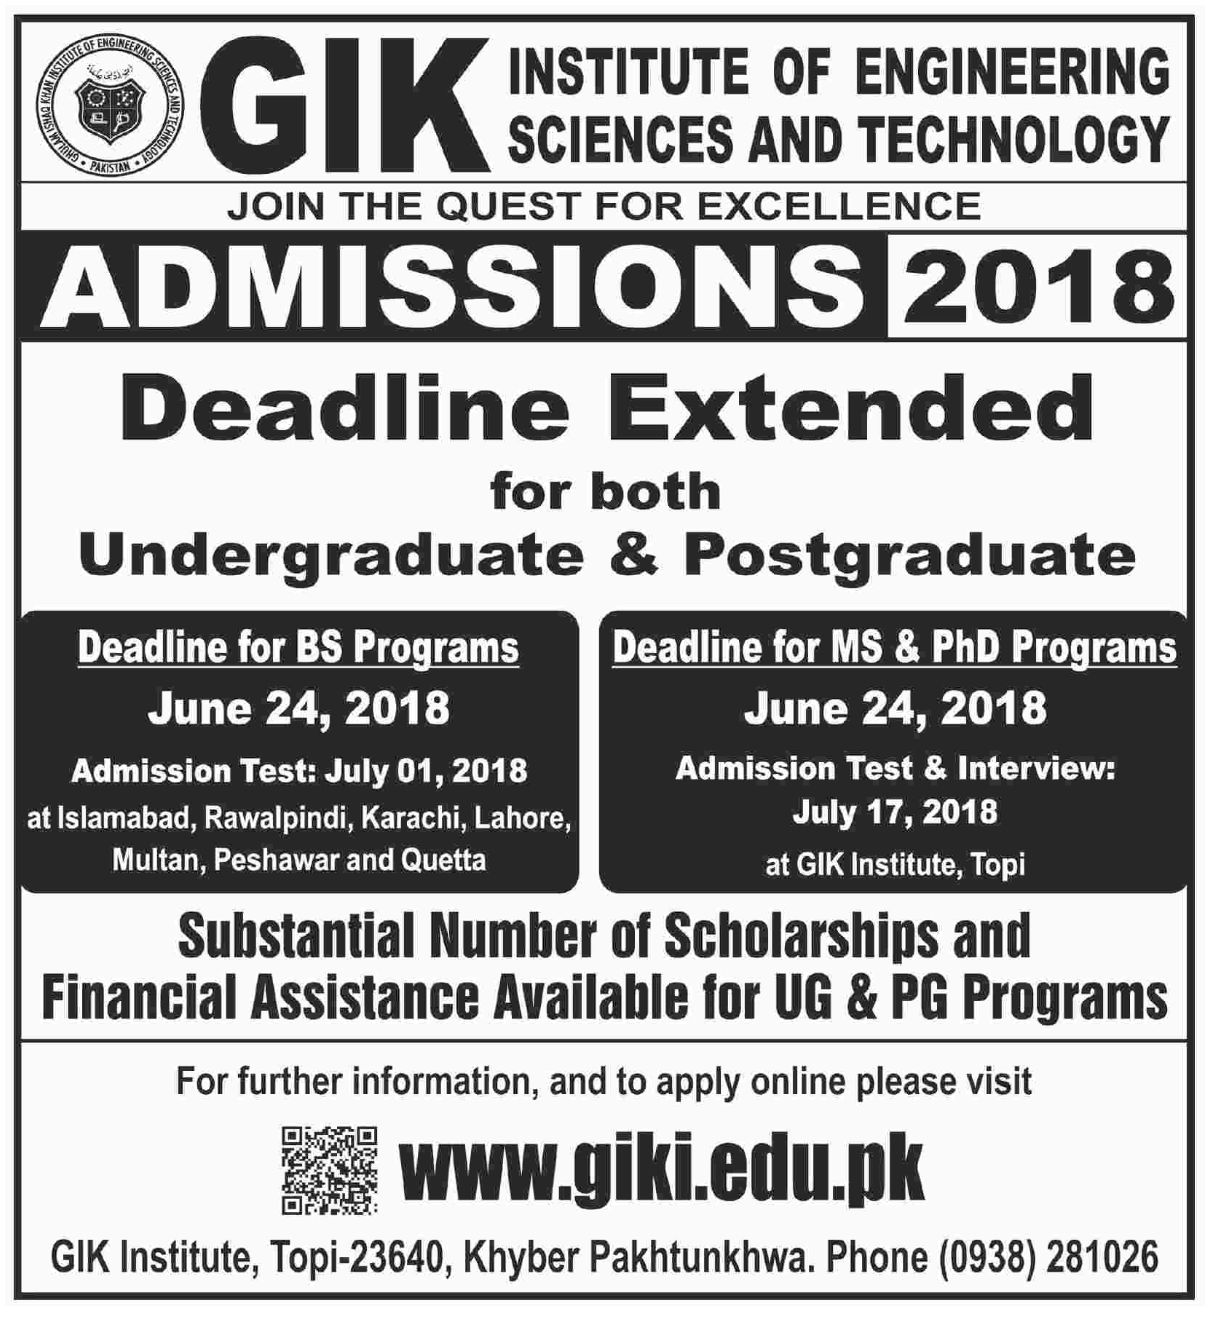 GIK Institute of Engineering Science & Technology (Deadline Extended) – Admissions 2018